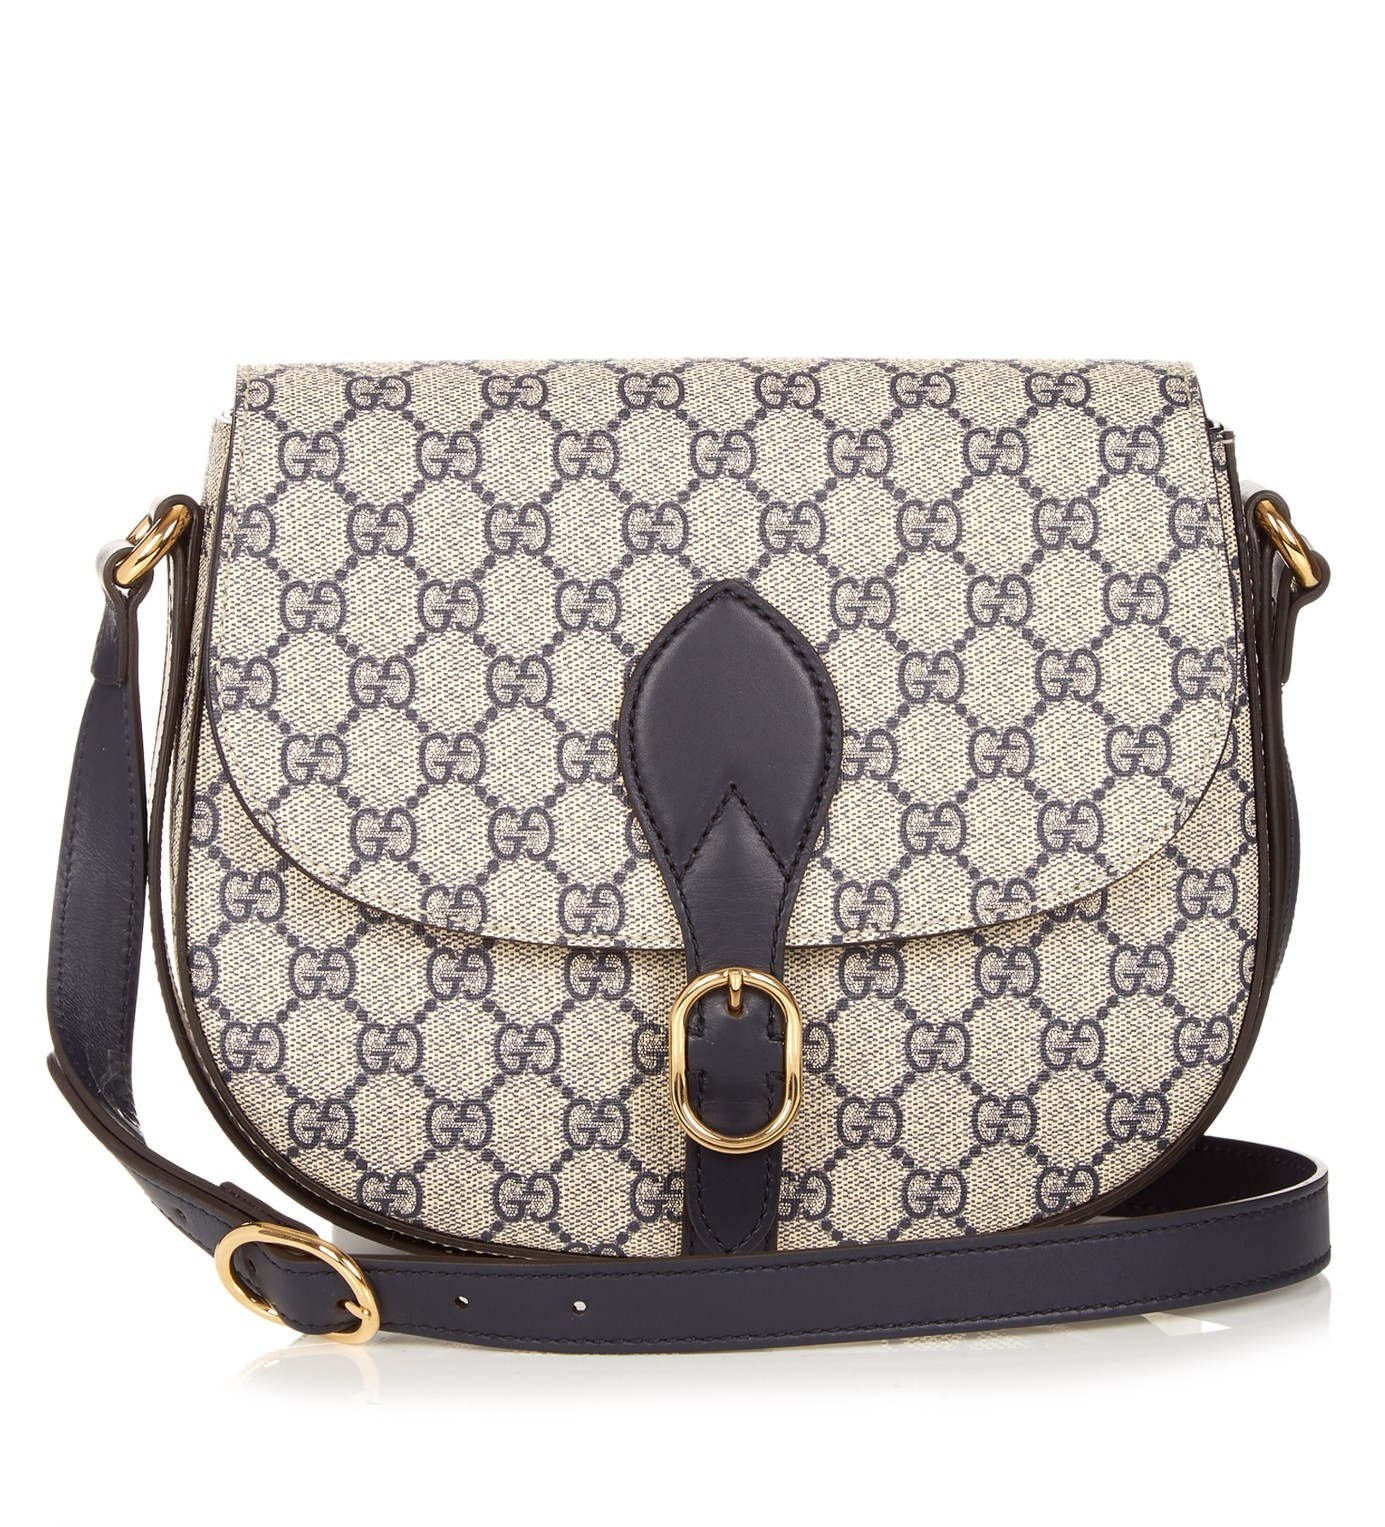 CASUAL CHIC: GUCCI Linea A GG Supreme canvas cross-body bag